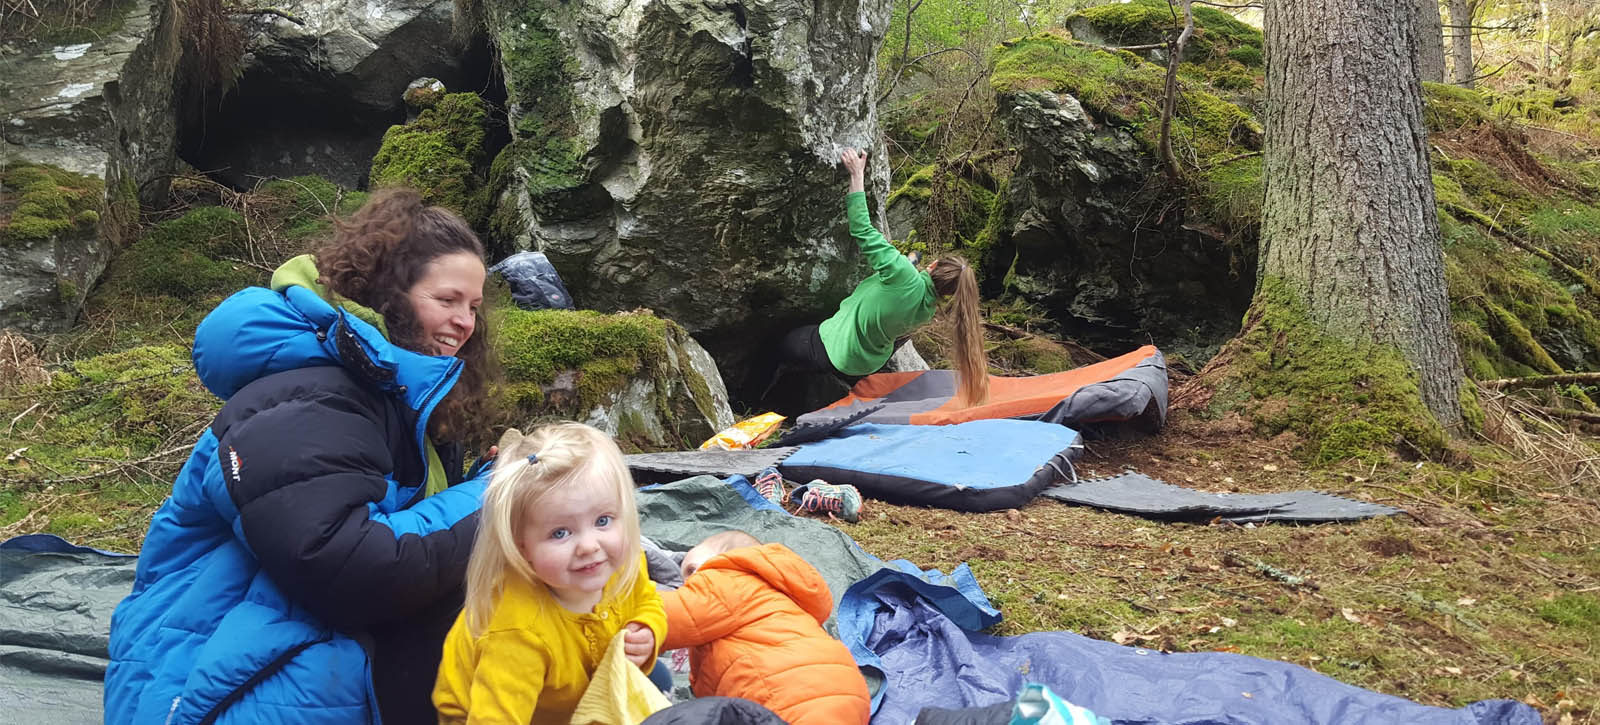 Climbing while pregnant - at the crag with children